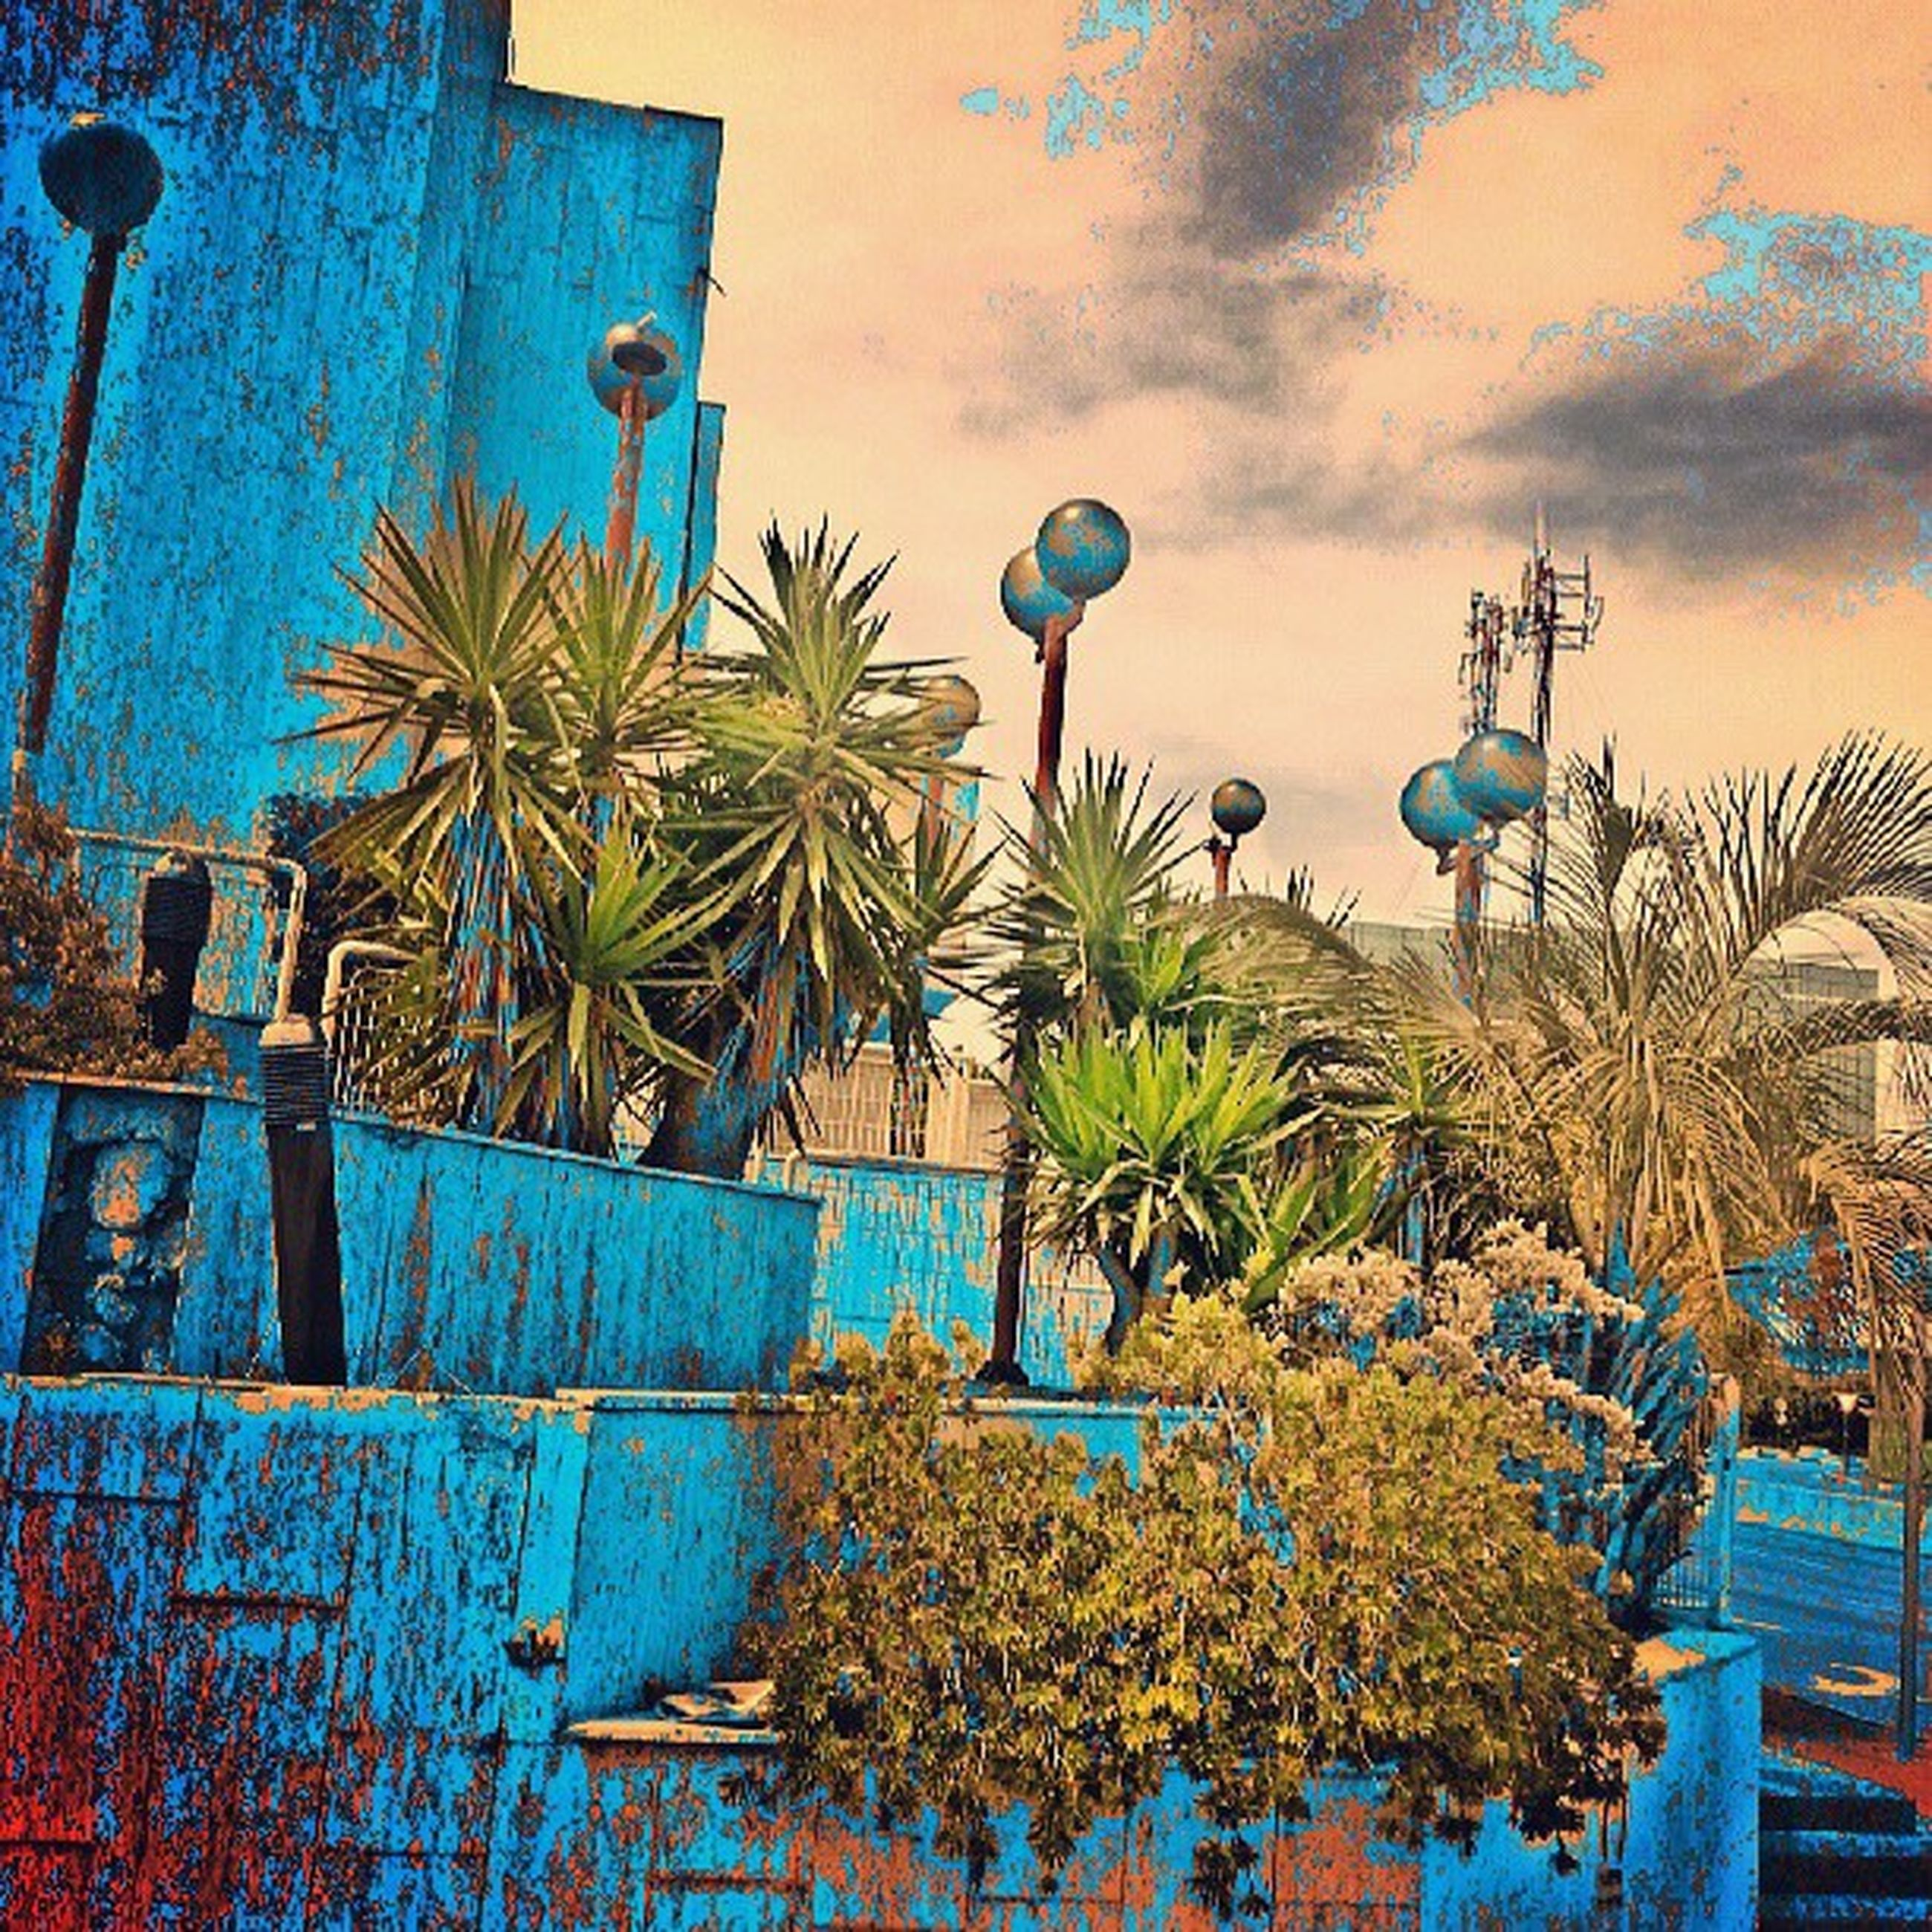 building exterior, built structure, architecture, sky, palm tree, blue, multi colored, cloud - sky, tree, low angle view, house, plant, growth, nature, outdoors, no people, sea, cloud, wall - building feature, day